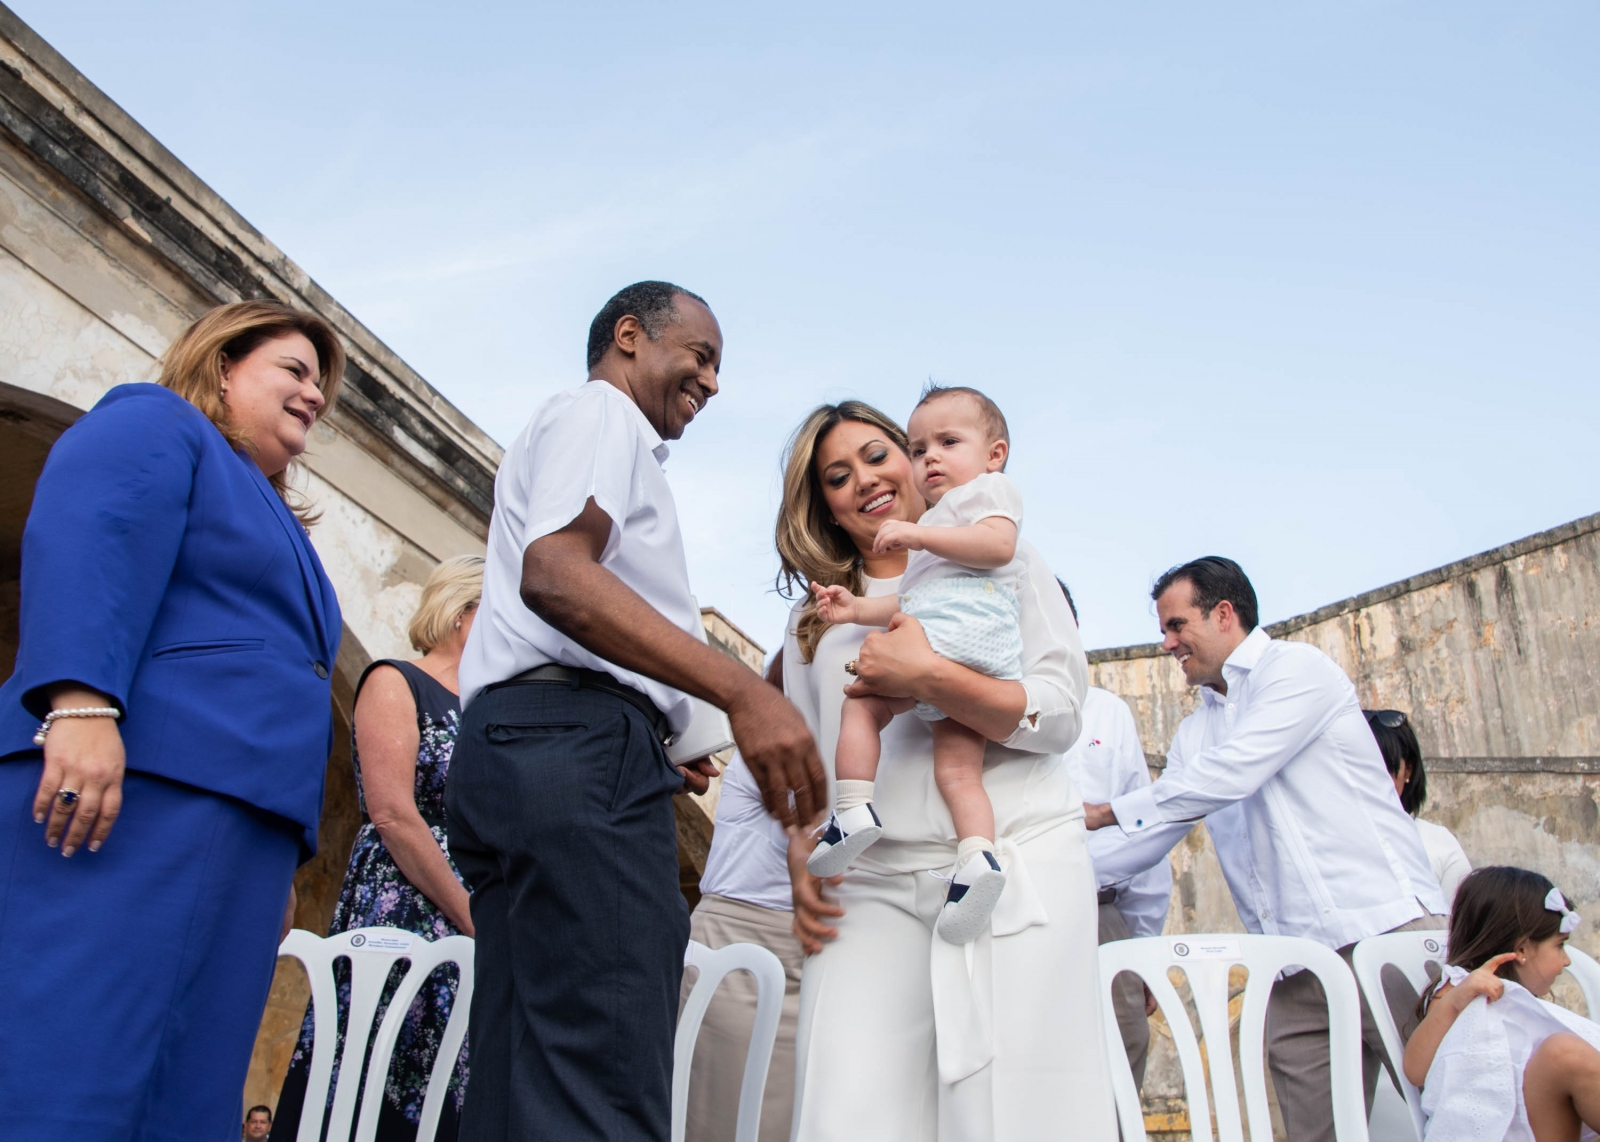 Jennifer Gonzales, Commissioned Resident of Puerto Rico in Washington, Ben Carson, United States Department of Housing and Urban Development (HUD), and Beatriz Rosselló, First Lady of Puerto Rico, during the anniversary of Hurricane María.